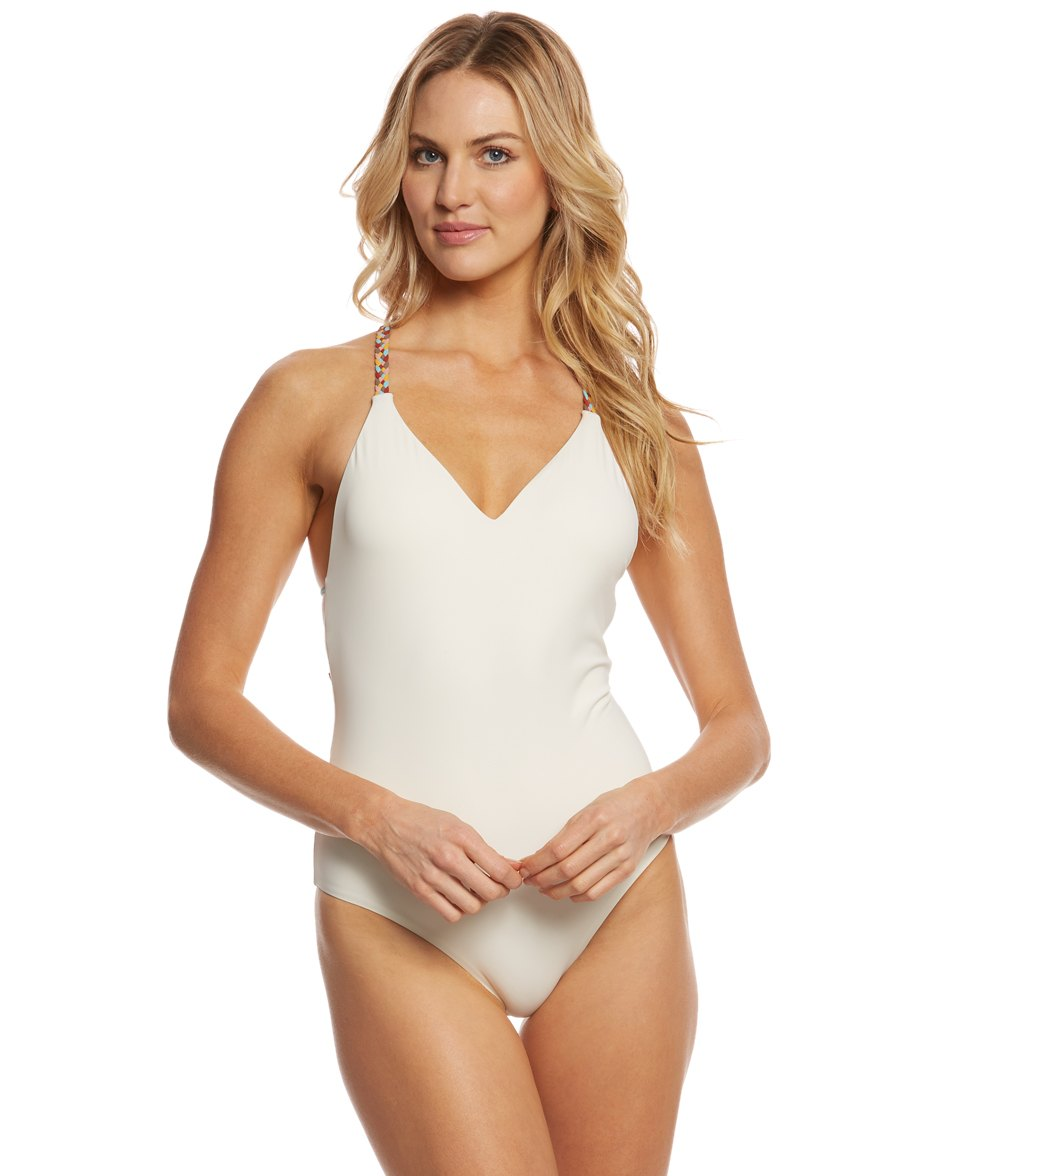 969673533b21 Red Carter Friendship Bracelet Plunge One Piece Swimsuit at SwimOutlet.com  - Free Shipping